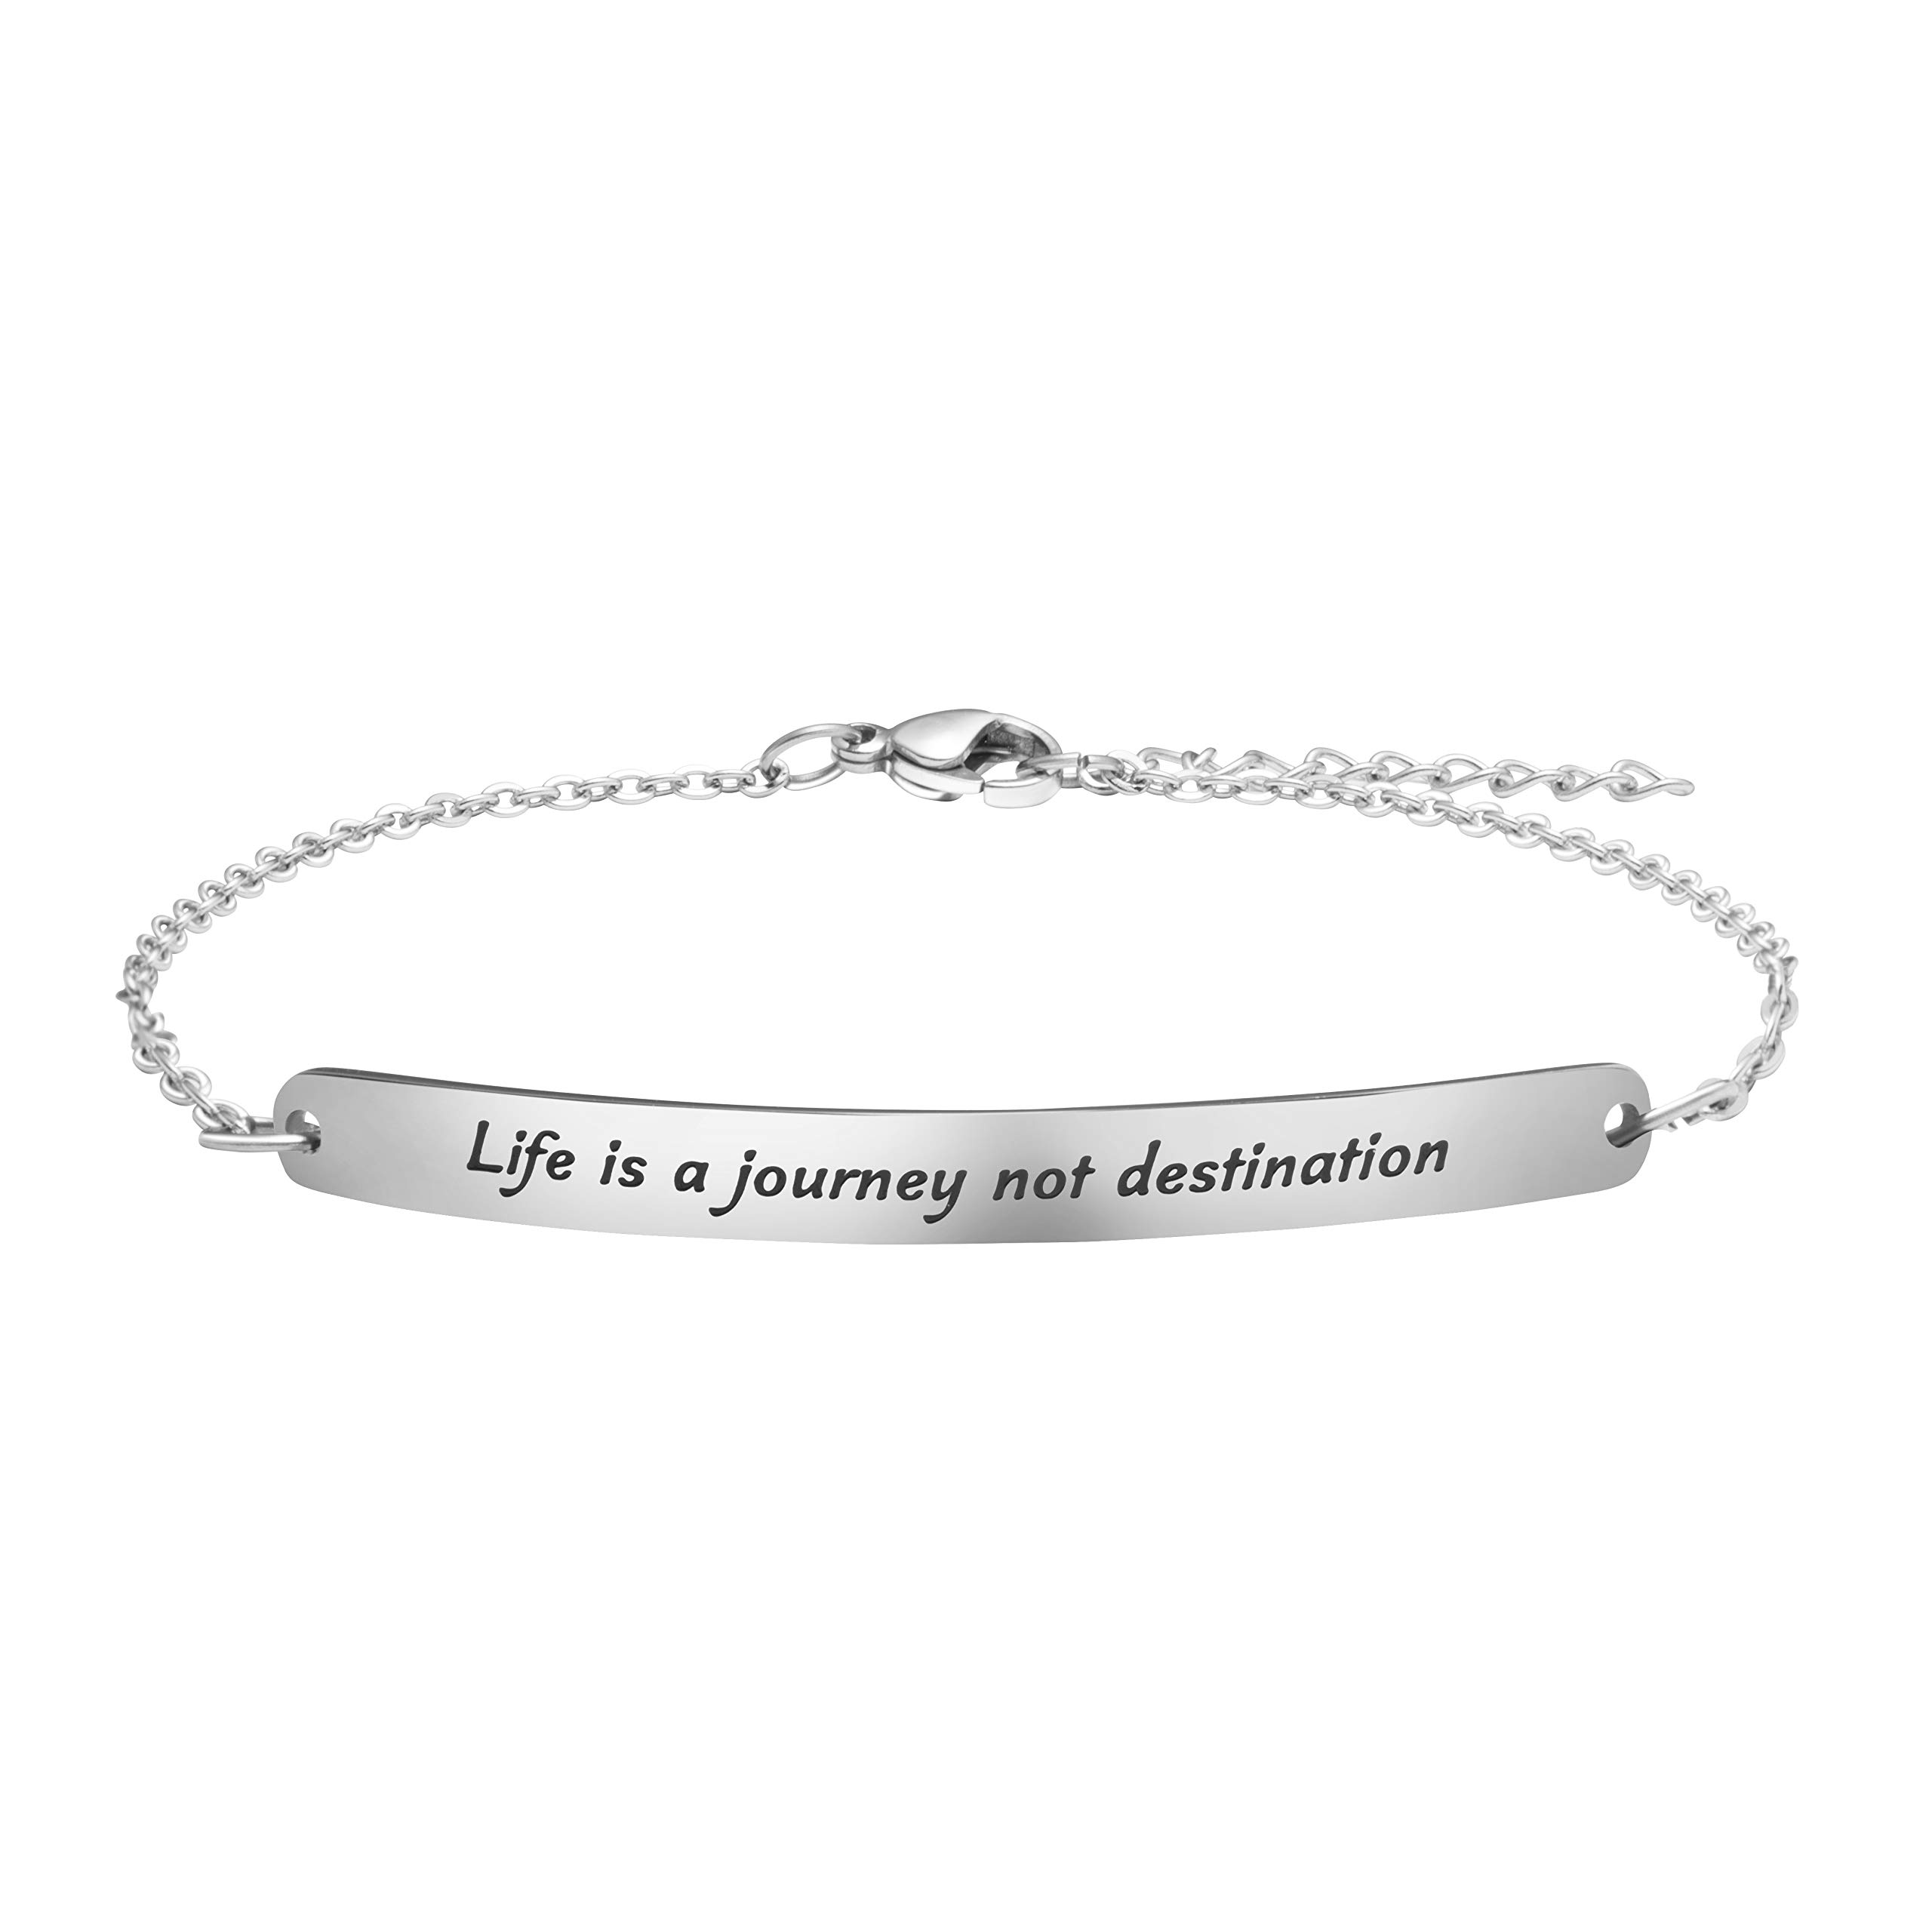 Inspirational Bracelet Birthday Gifts for Women Christmas Jewelry Mantra Silver Stainless Steel Chain Life is A Journey Not A Destination